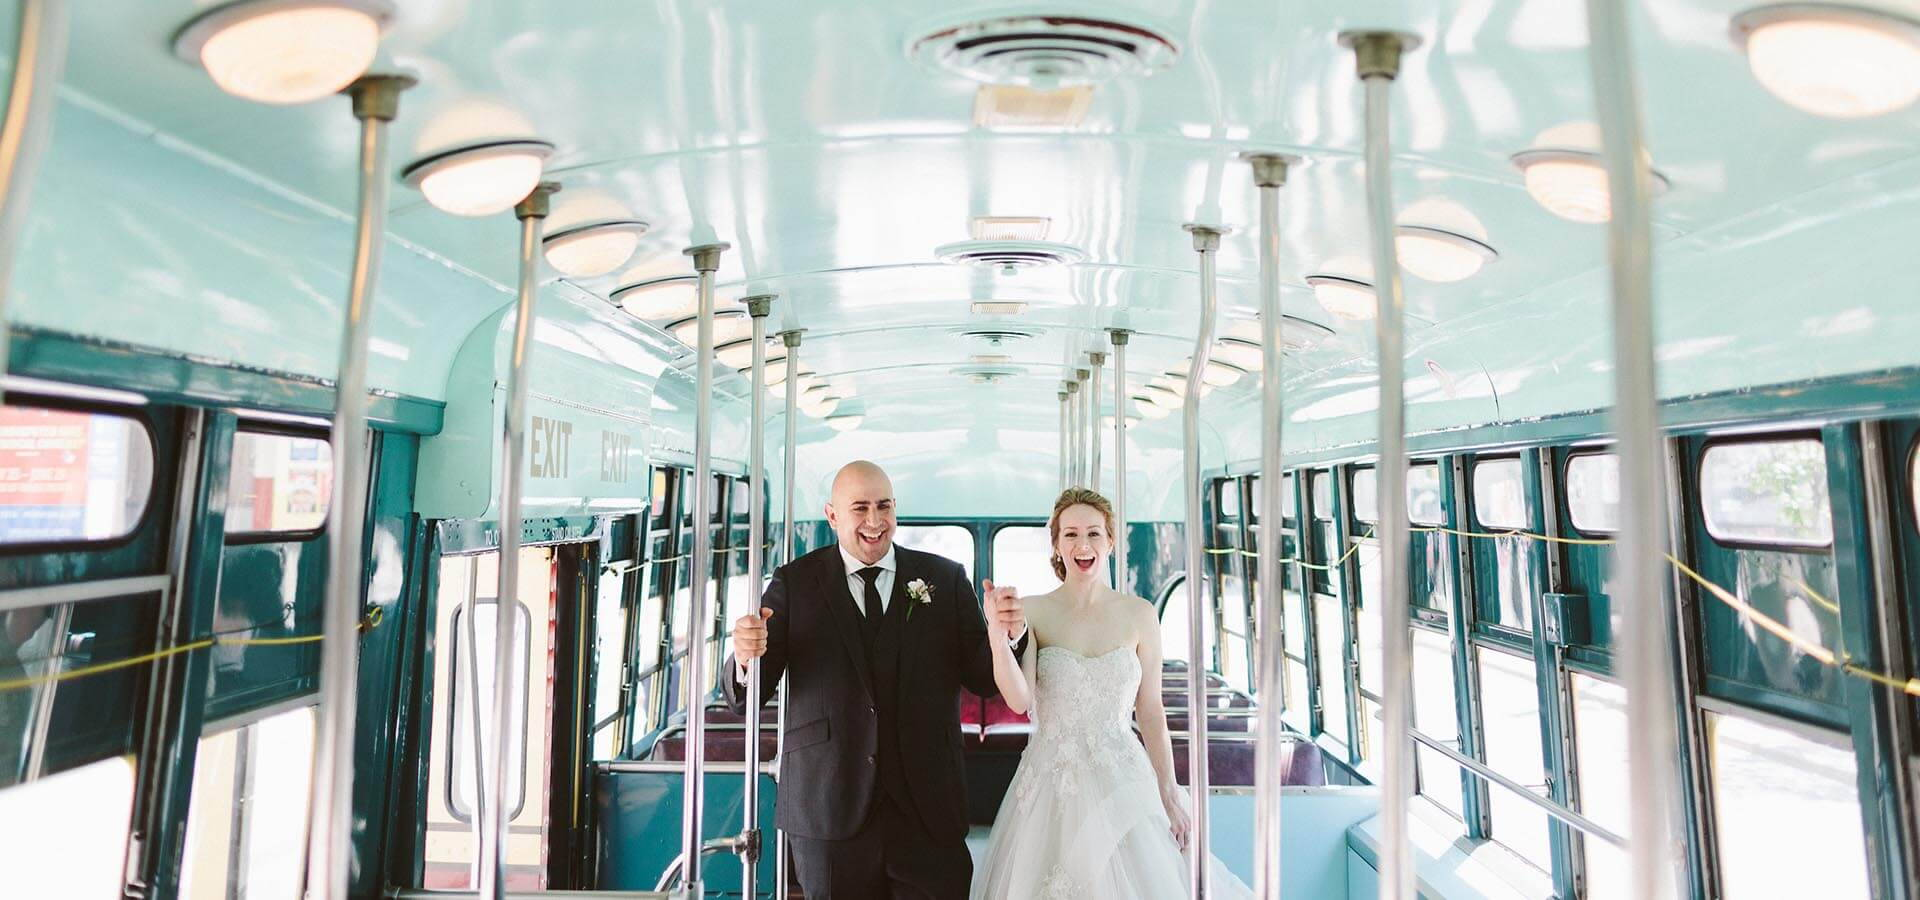 Hero image for Jenny and Neal's Chic Urban Wedding at Arcadian Loft